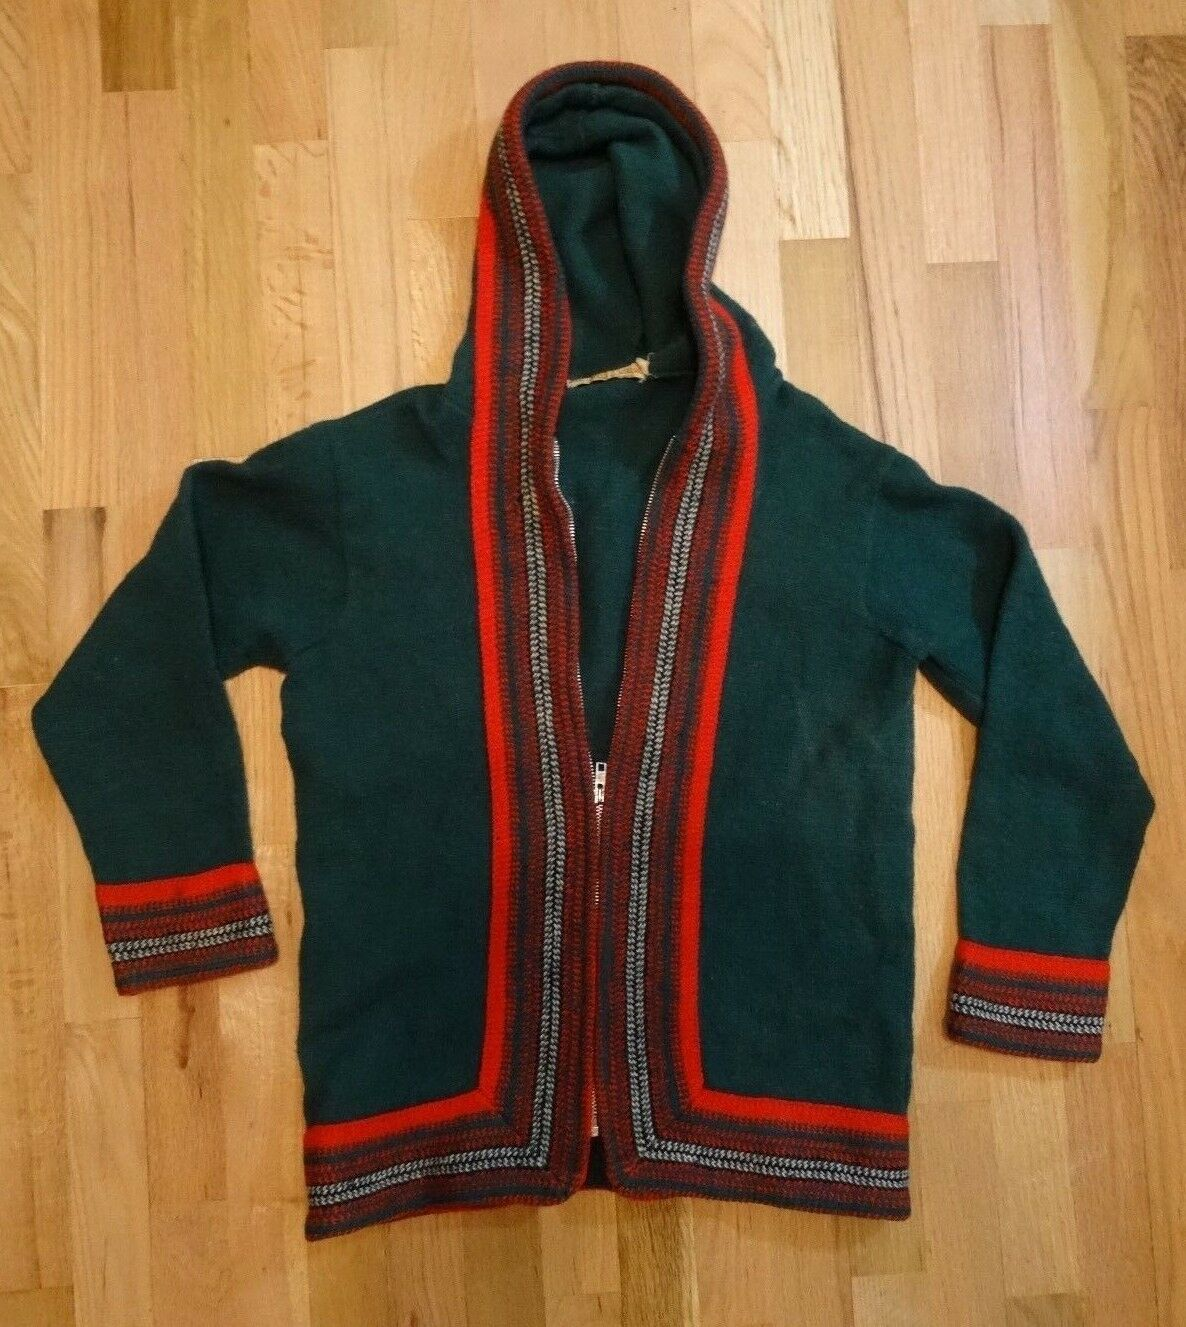 (MJS) Vintage Robert Mackie of Scotland Wool Hooded Sweater, Green & Red, Size M